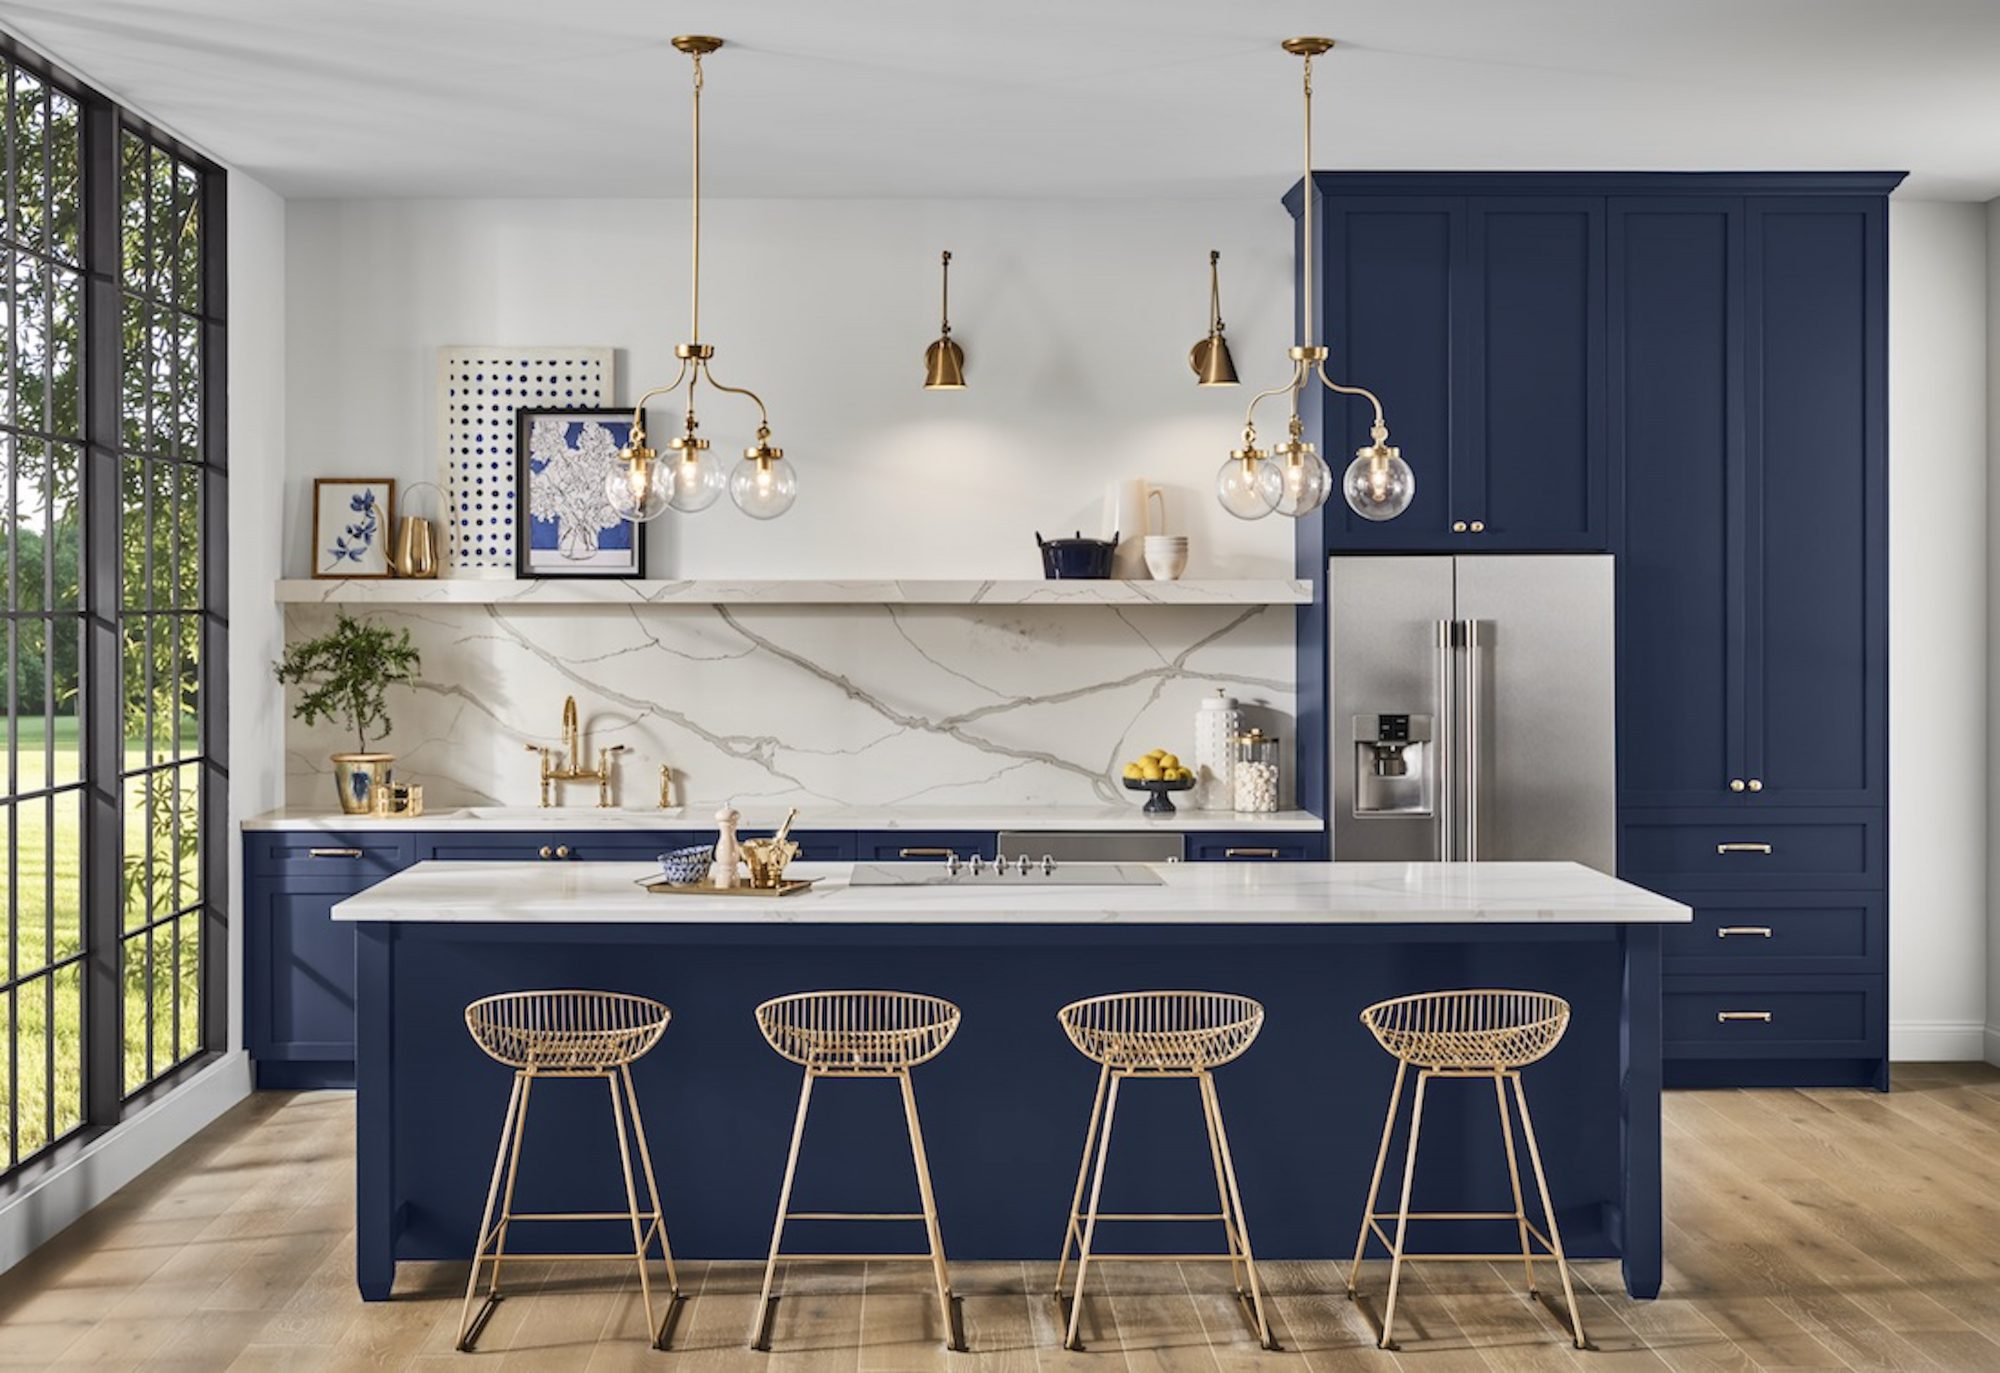 7 Paint Colors We Re Loving For Kitchen Cabinets In 2021 Southern Living